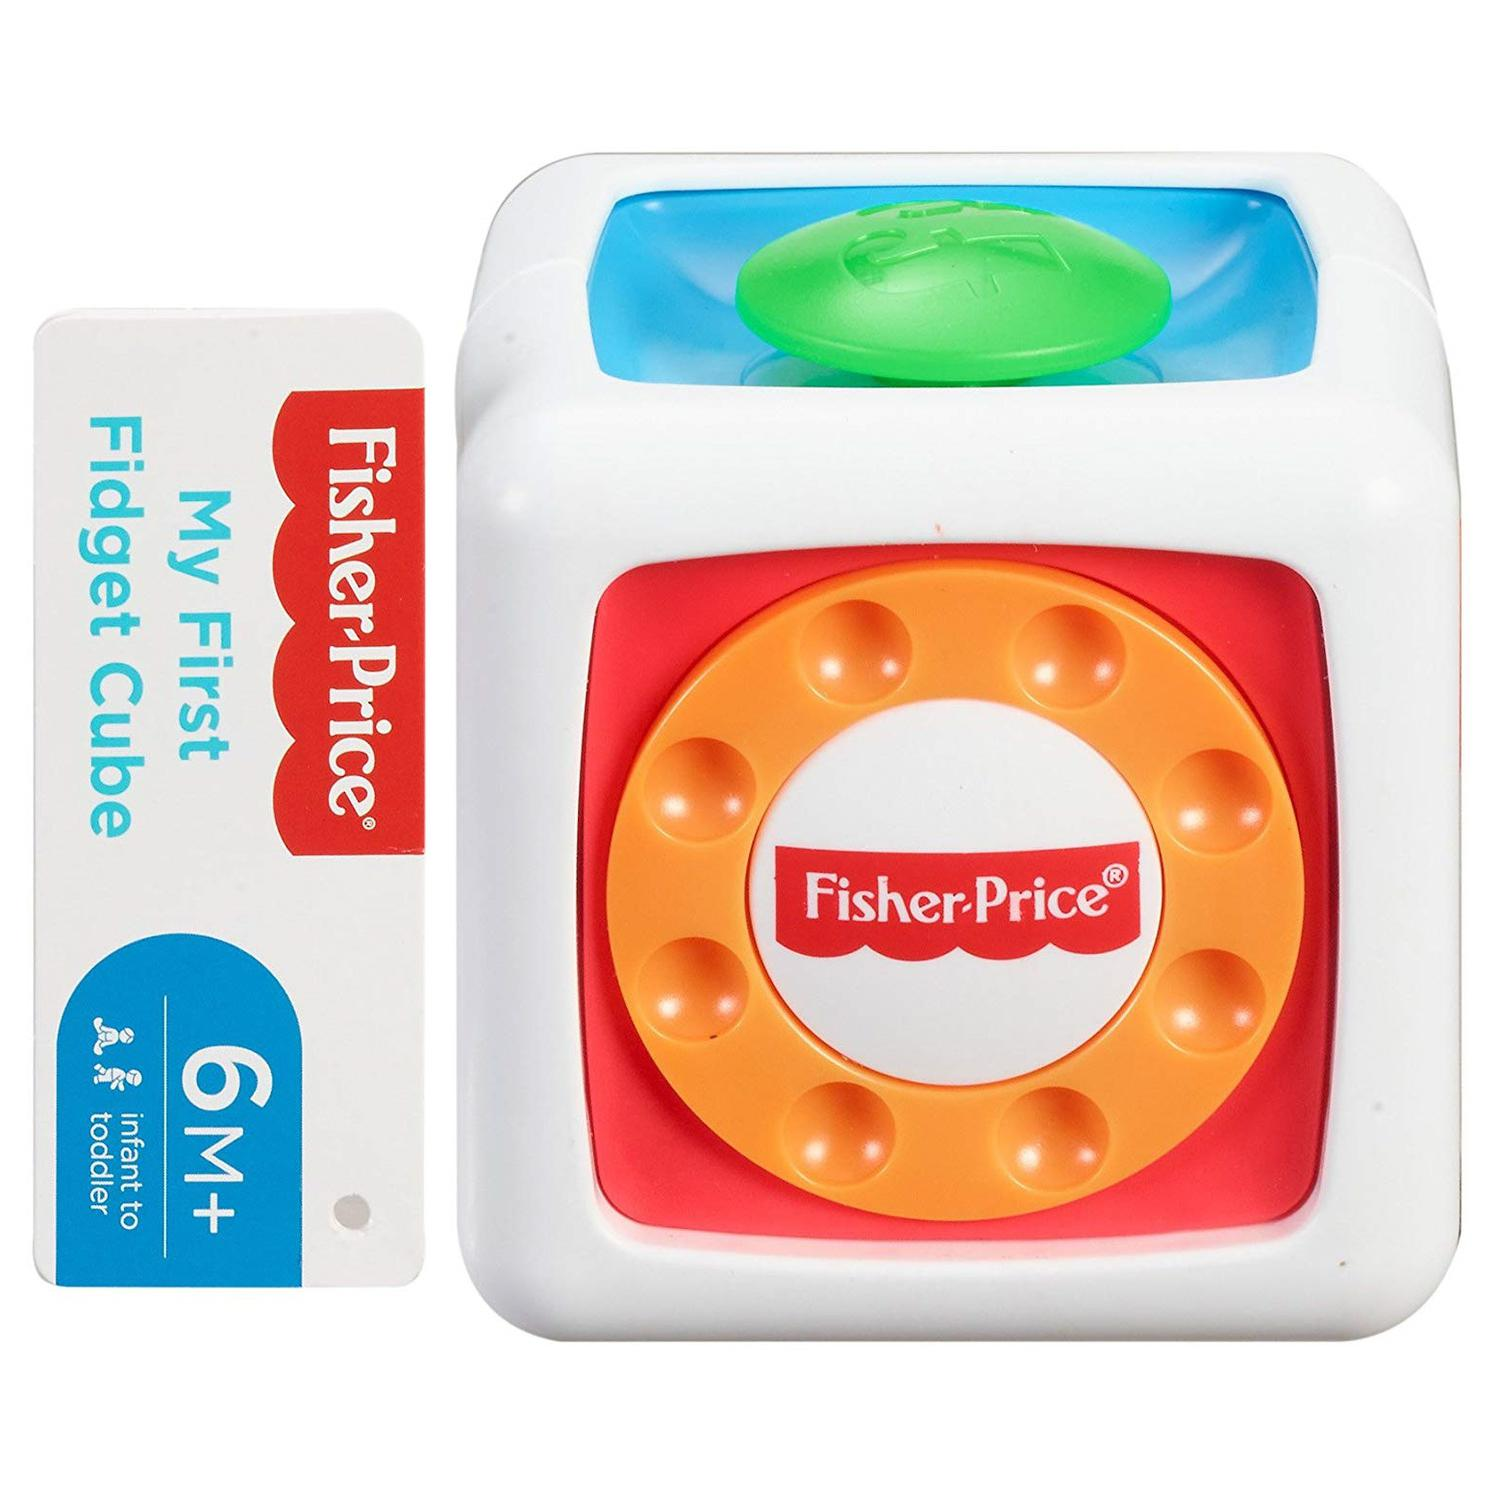 Brinquedo Fidget Cube Cubo Divertido Fisher Price